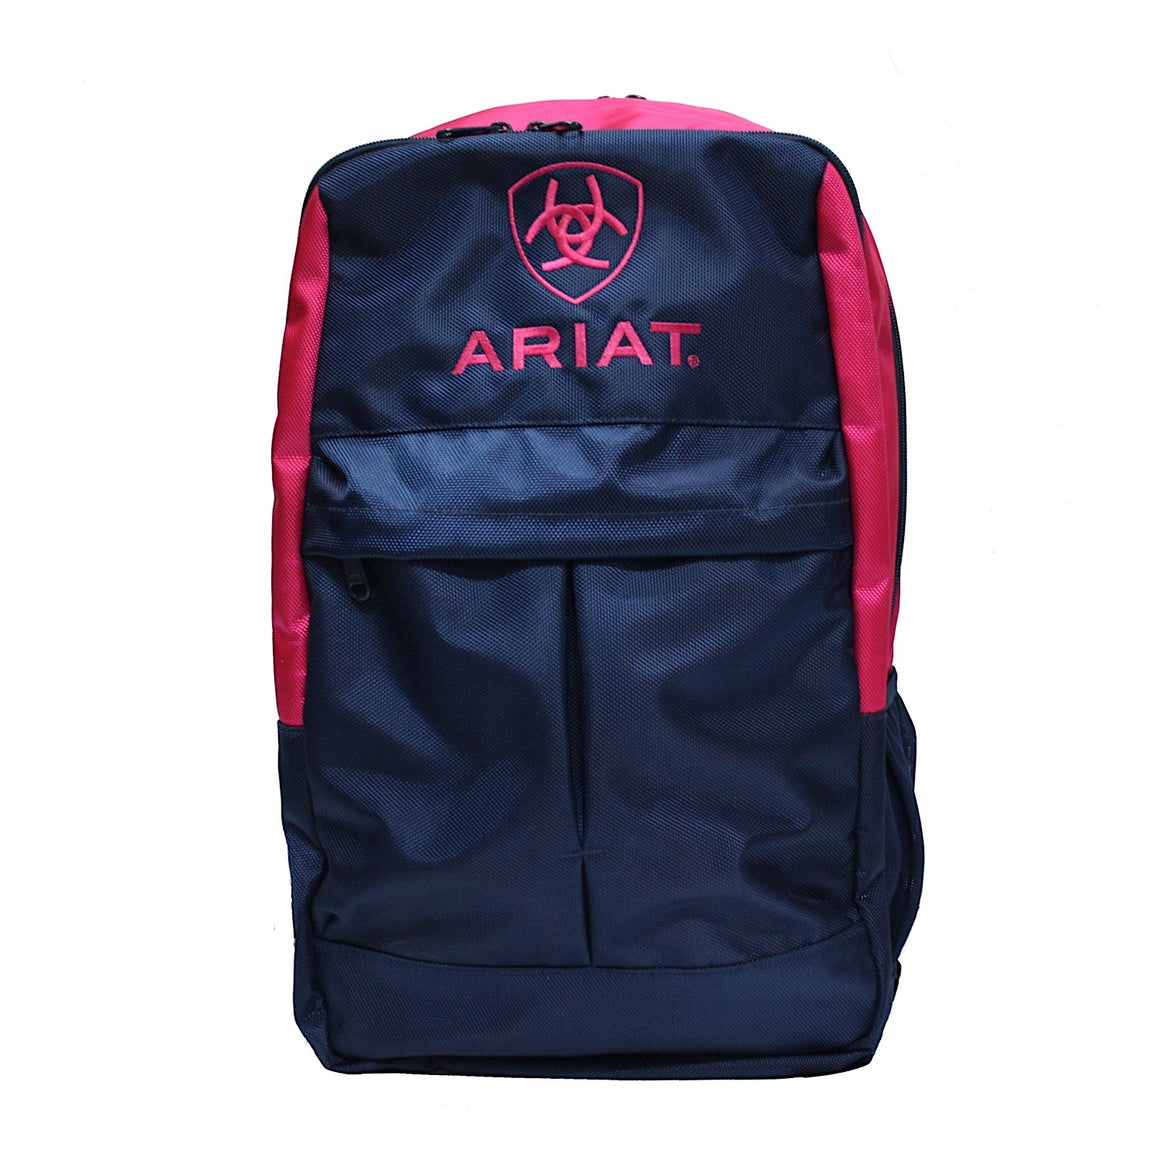 Ariat Backpack Pink/Navy 4-400PK